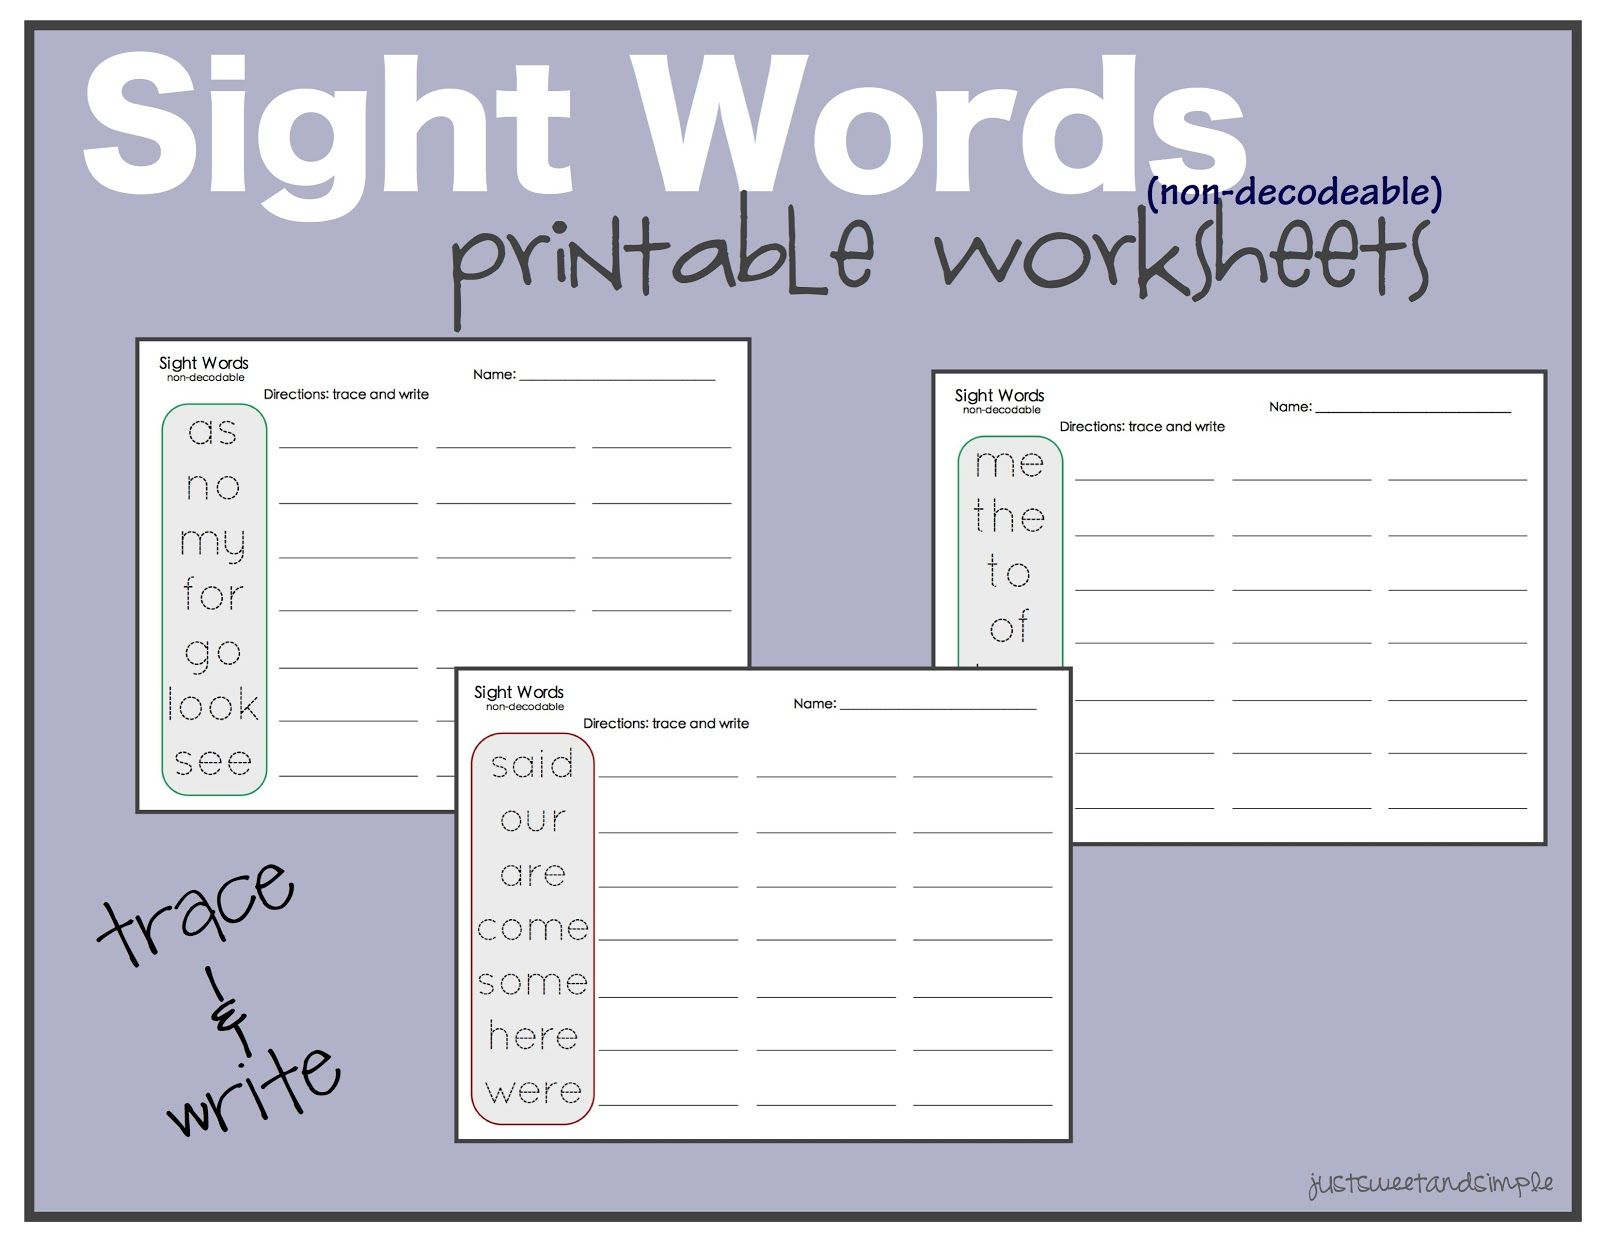 Worksheets Sight Words Practice Worksheets just sweet and simple preschool practice sight word worksheets